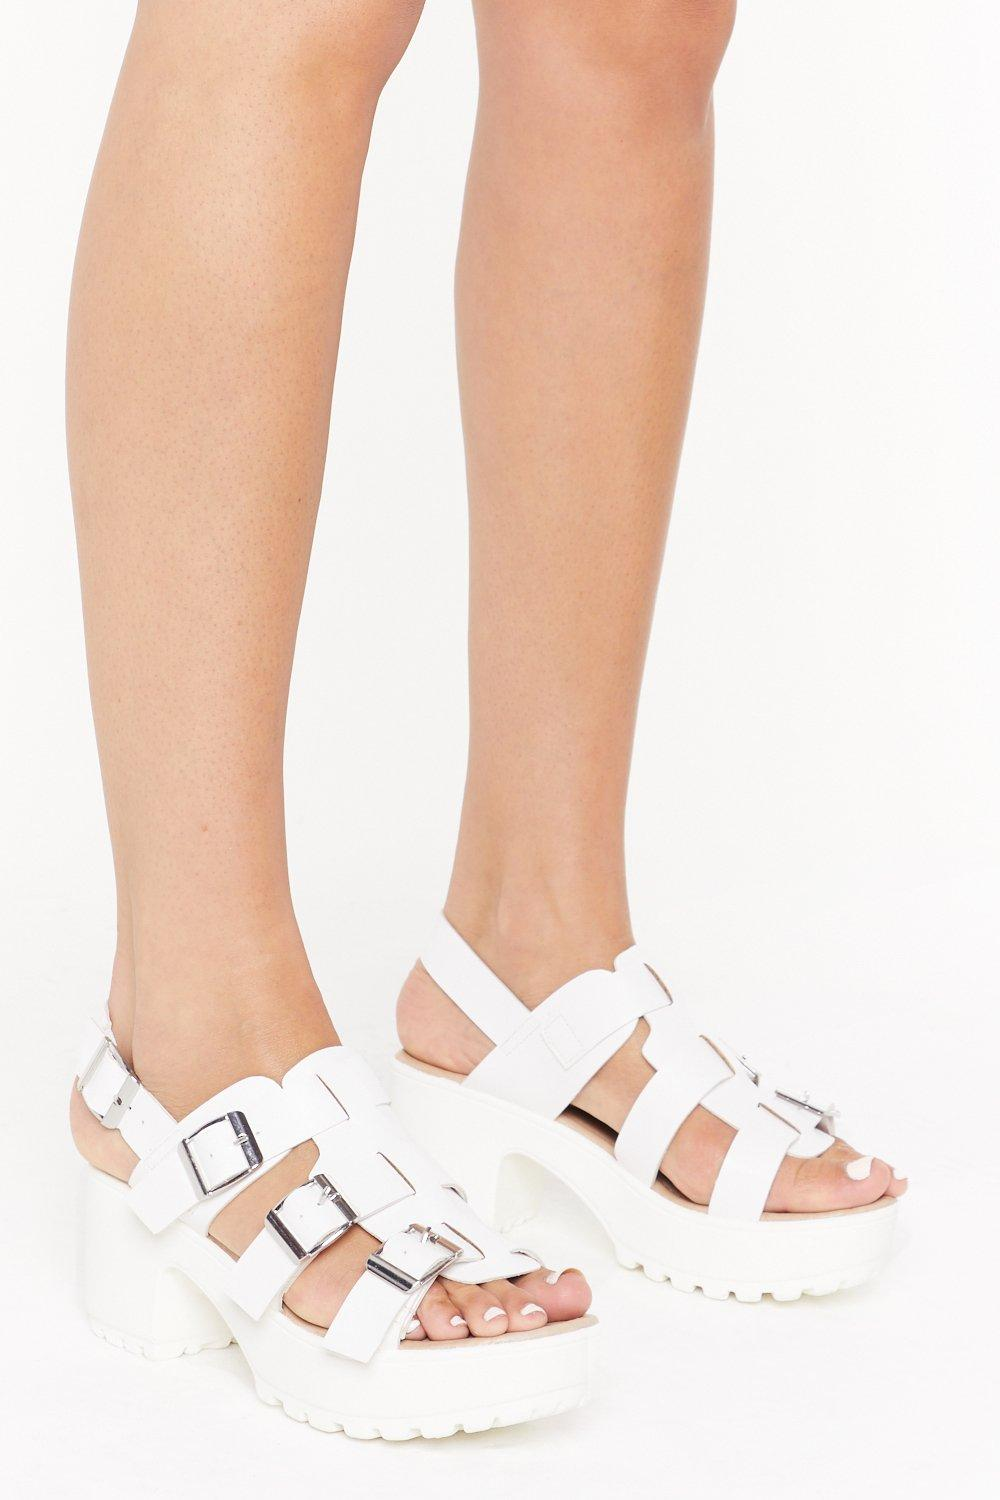 We're A Cut Out Above The Rest Faux Leather Sandals by Nasty Gal